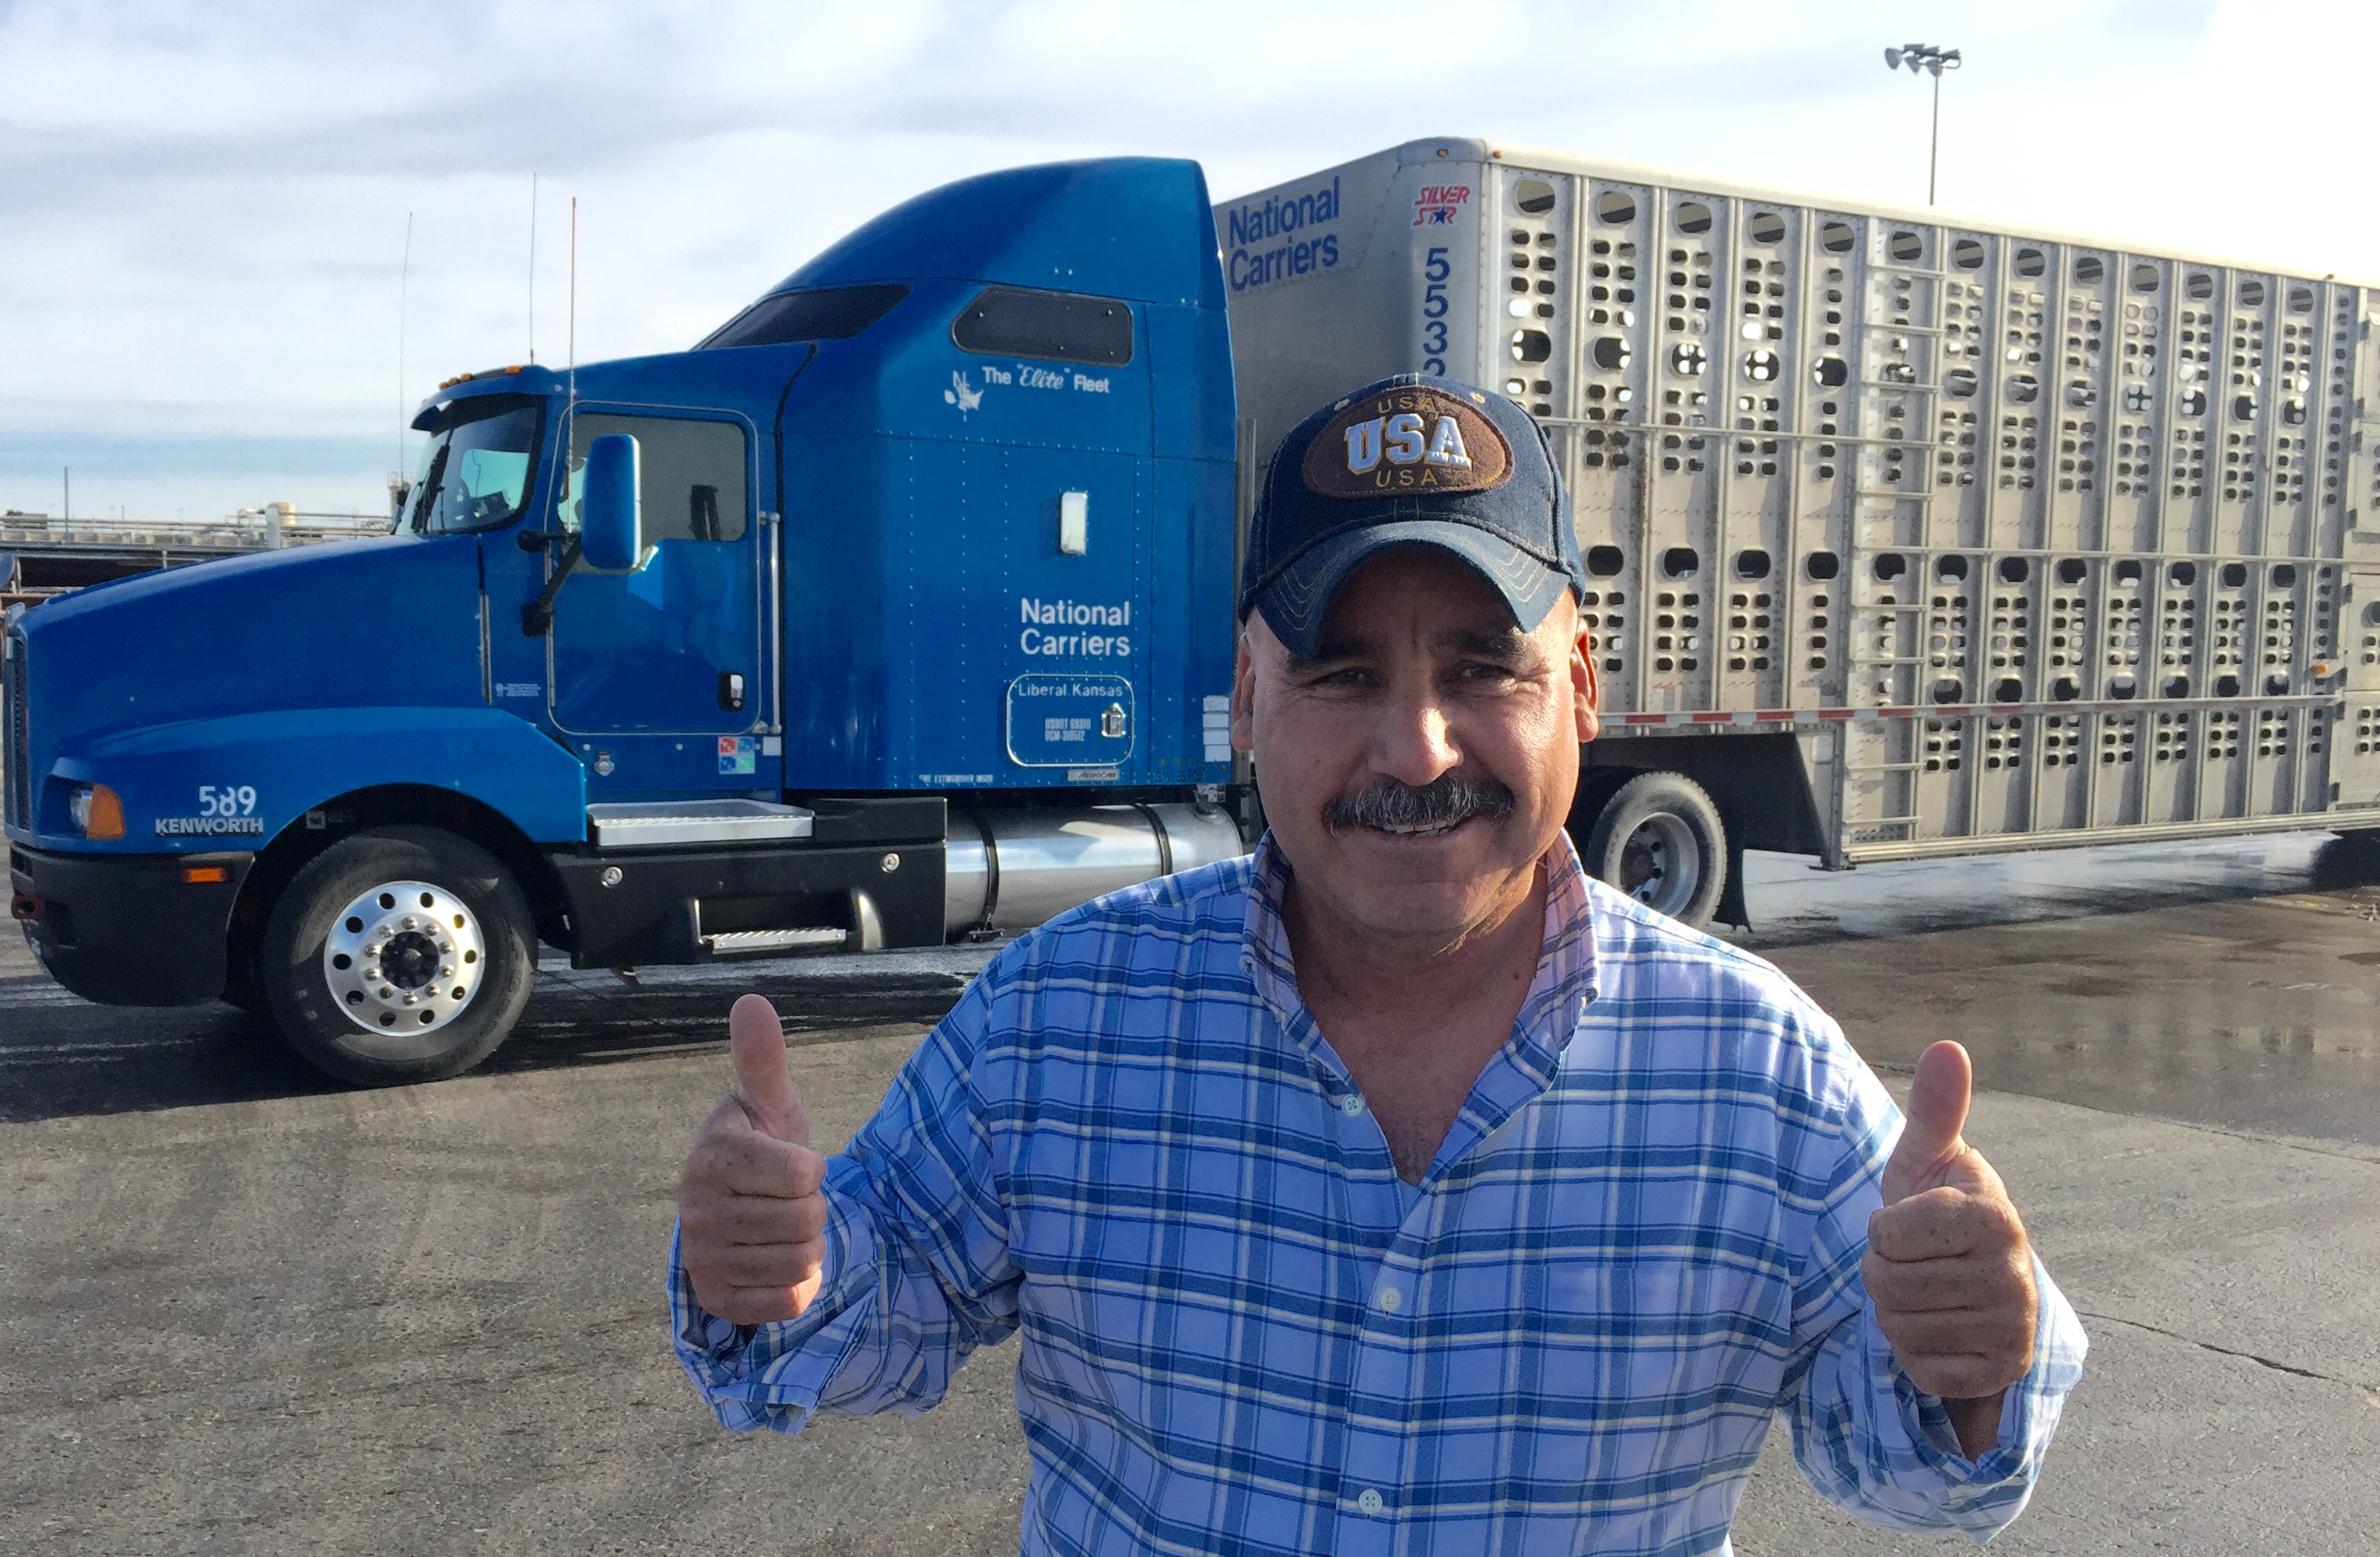 thumbs up with truck